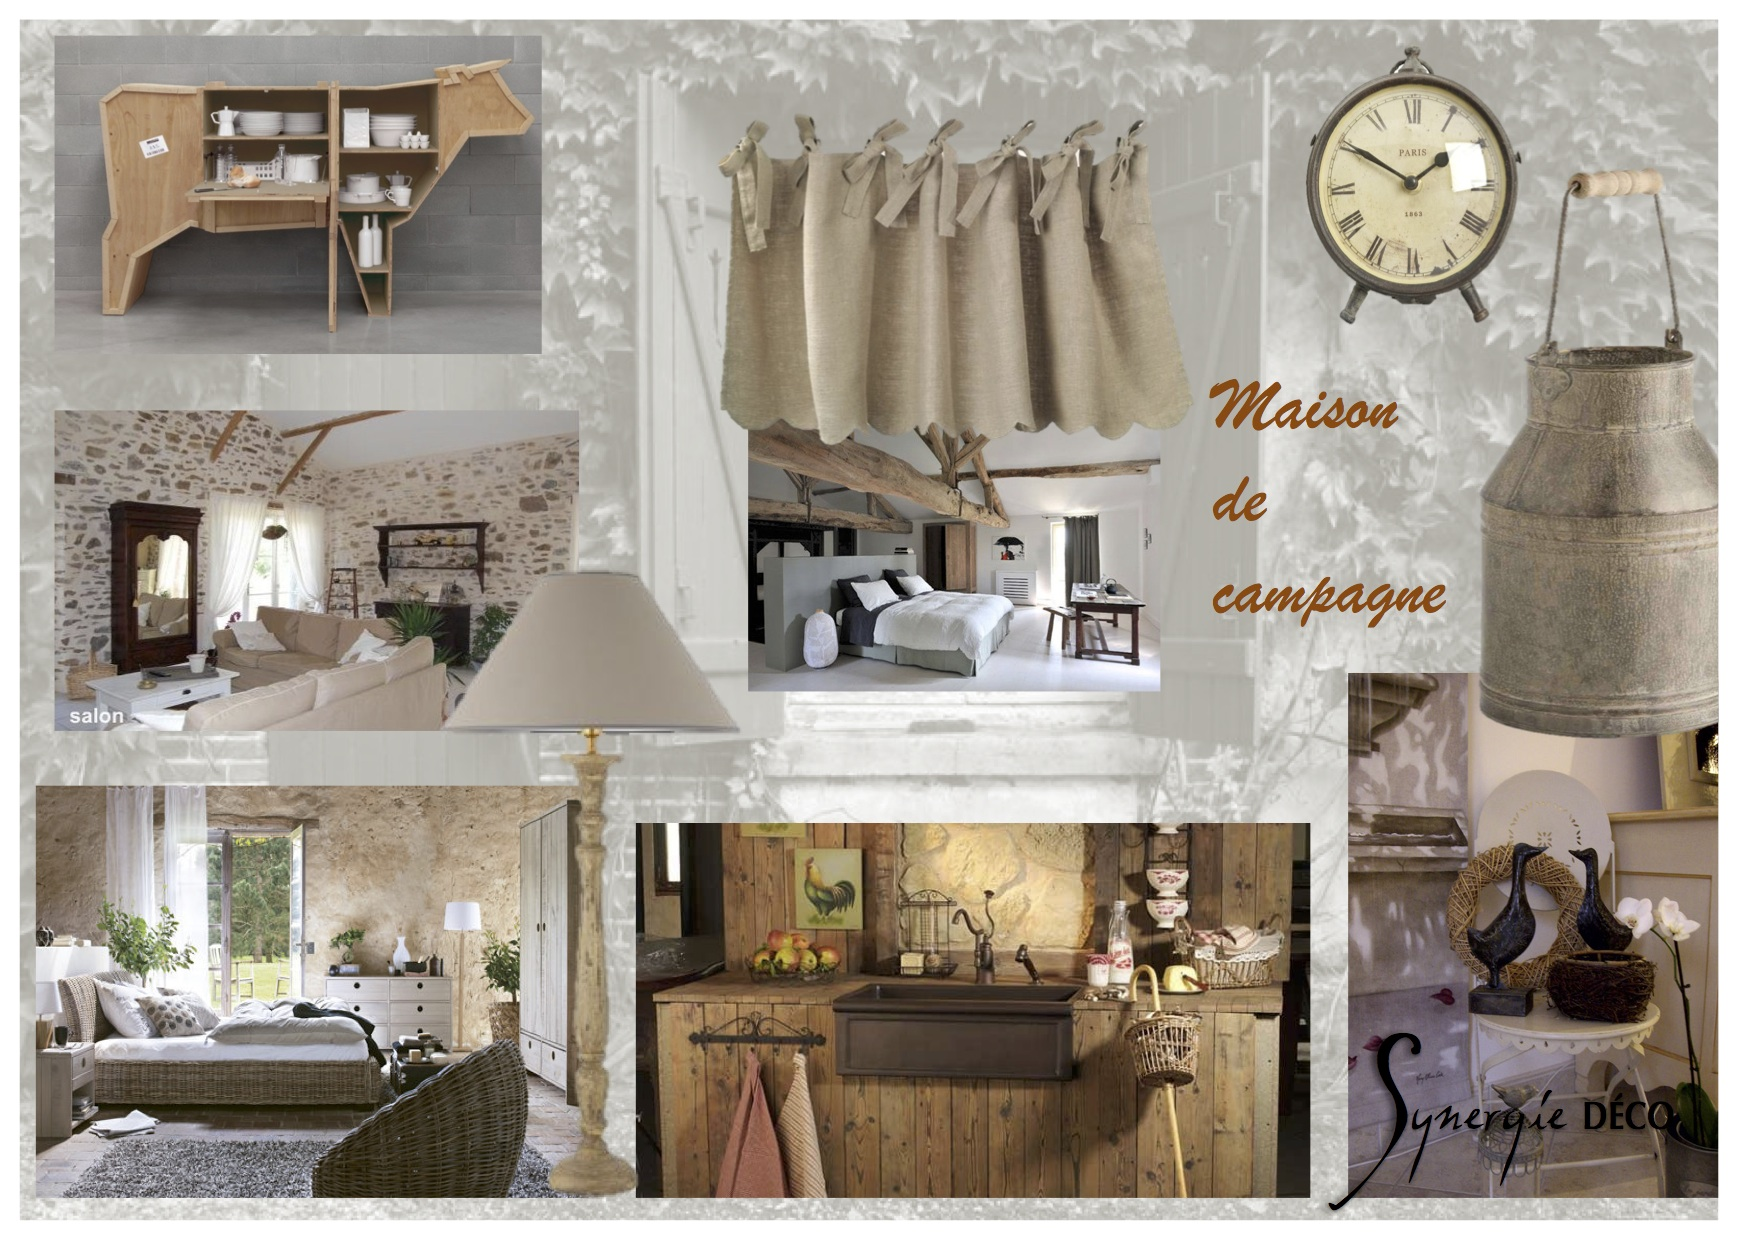 Planches ambiance synergie d co for Blog deco maison de campagne